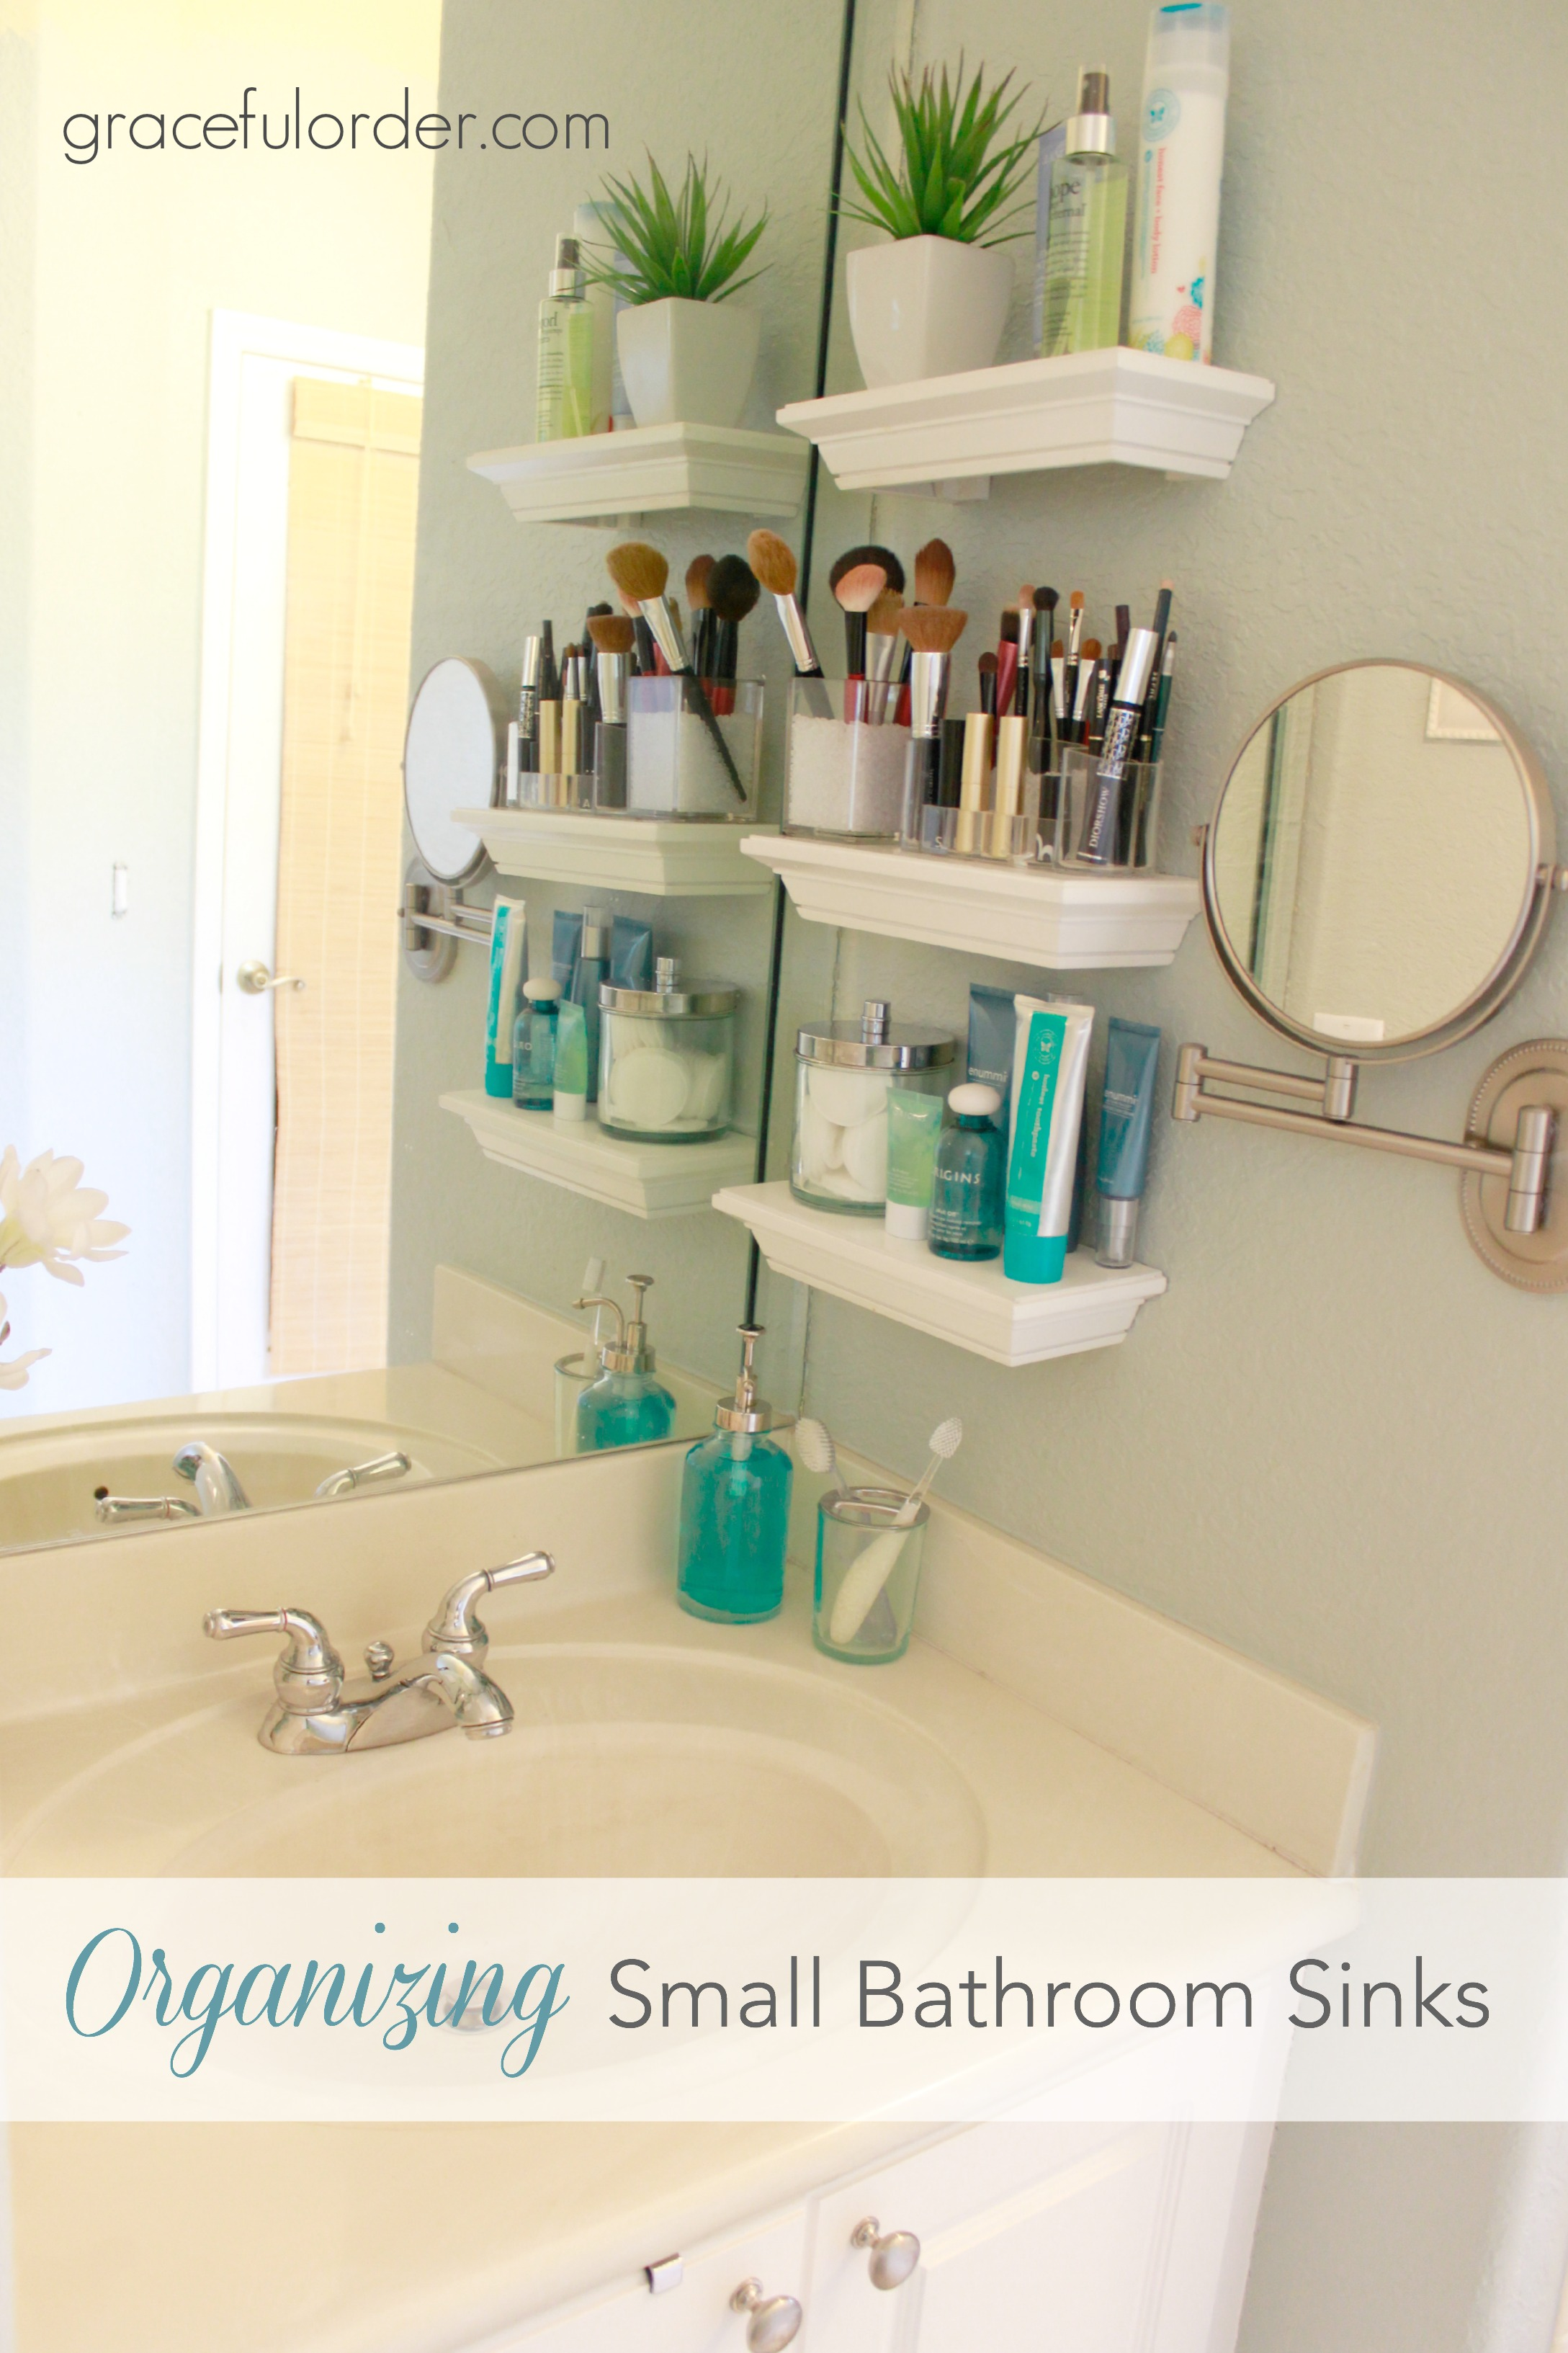 organizing small bathroom sinks graceful order